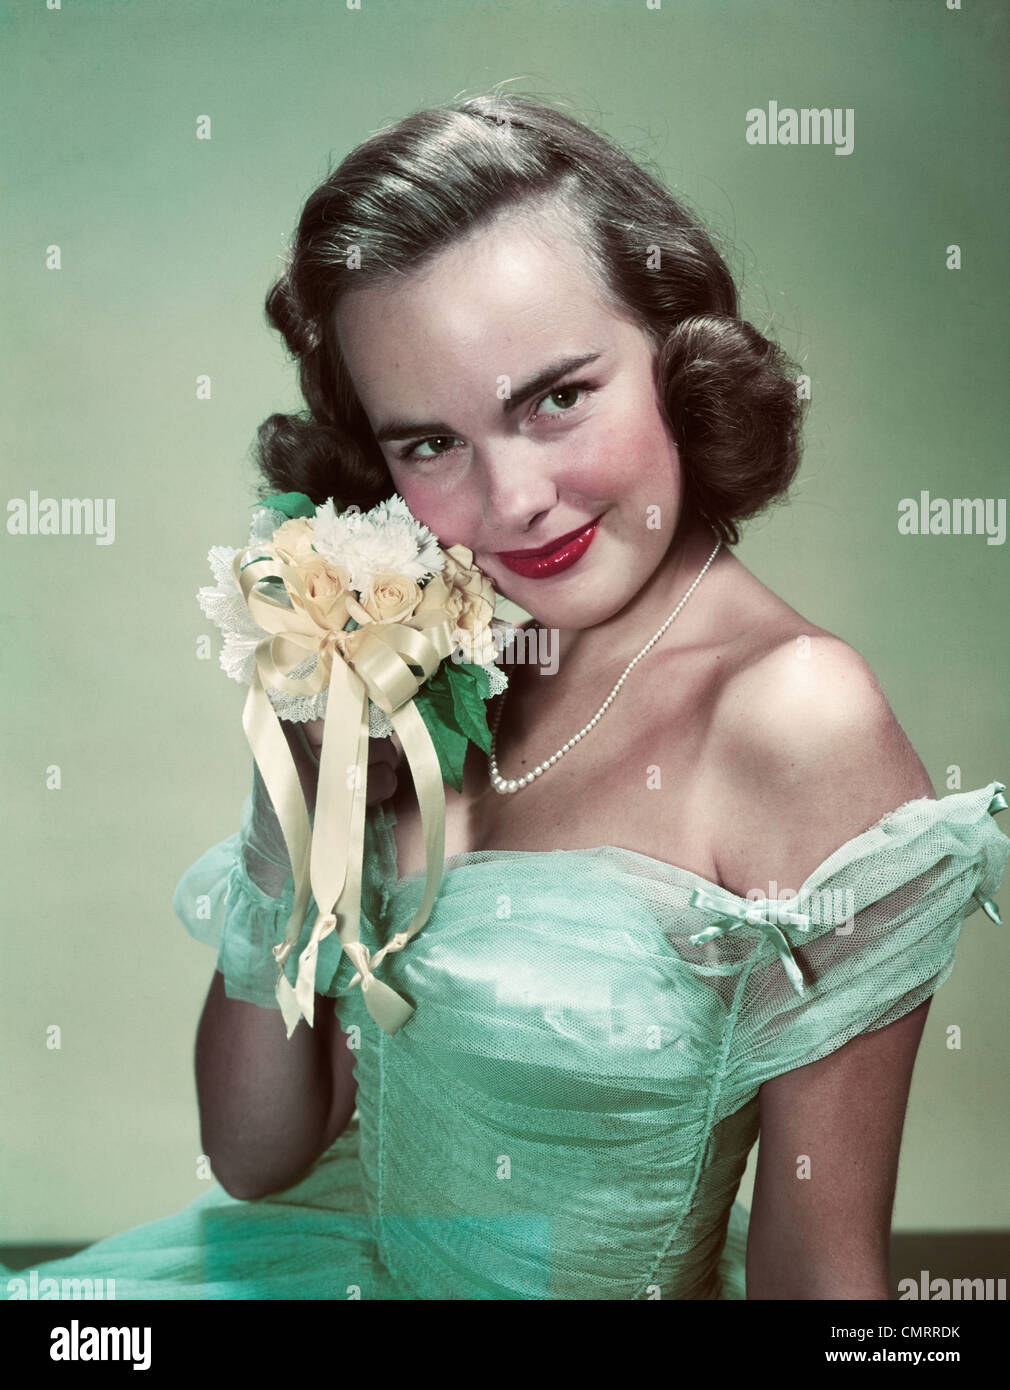 1940s 1950s Portrait Smiling Teen Girl Wearing Green Formal Dress